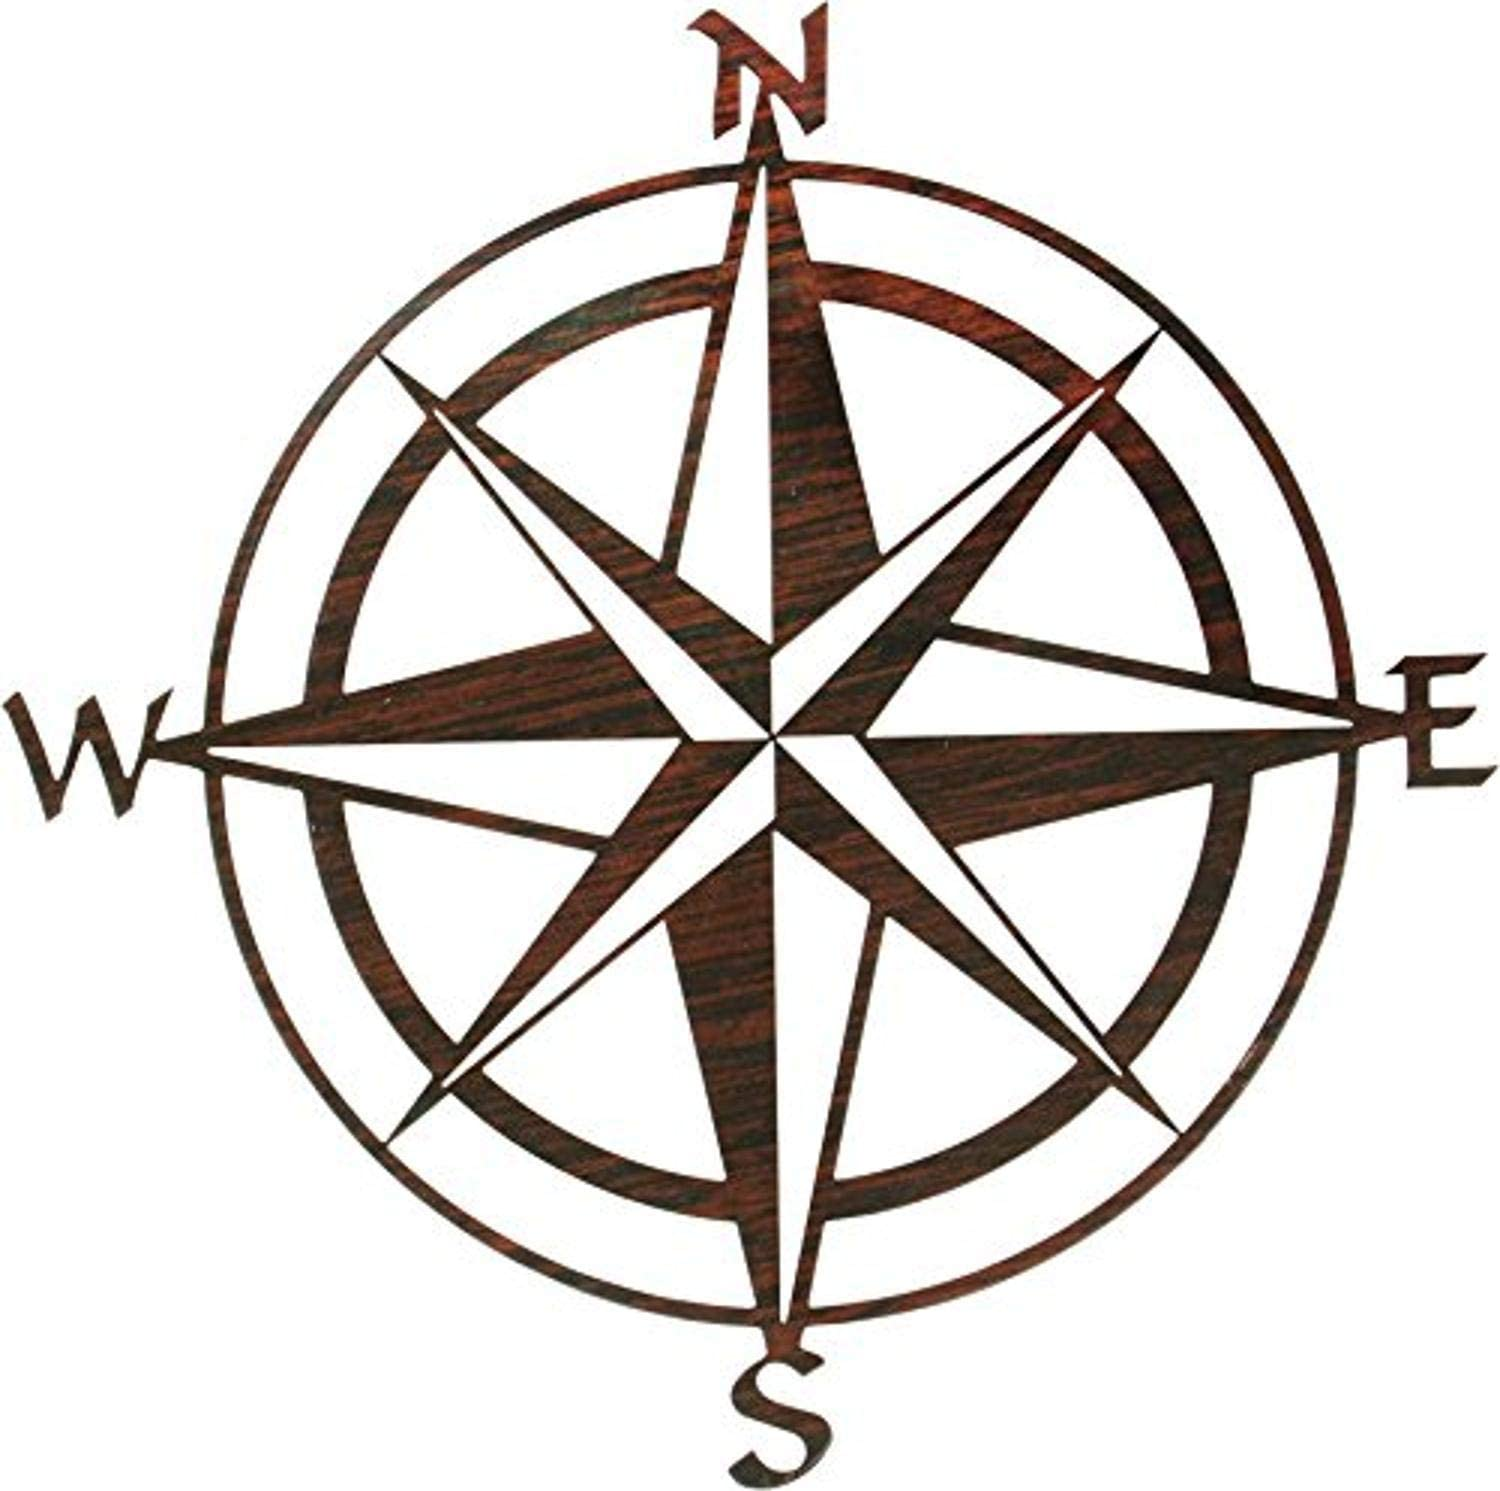 Thirstystone Compass Rose Wall Art, 20-Inch